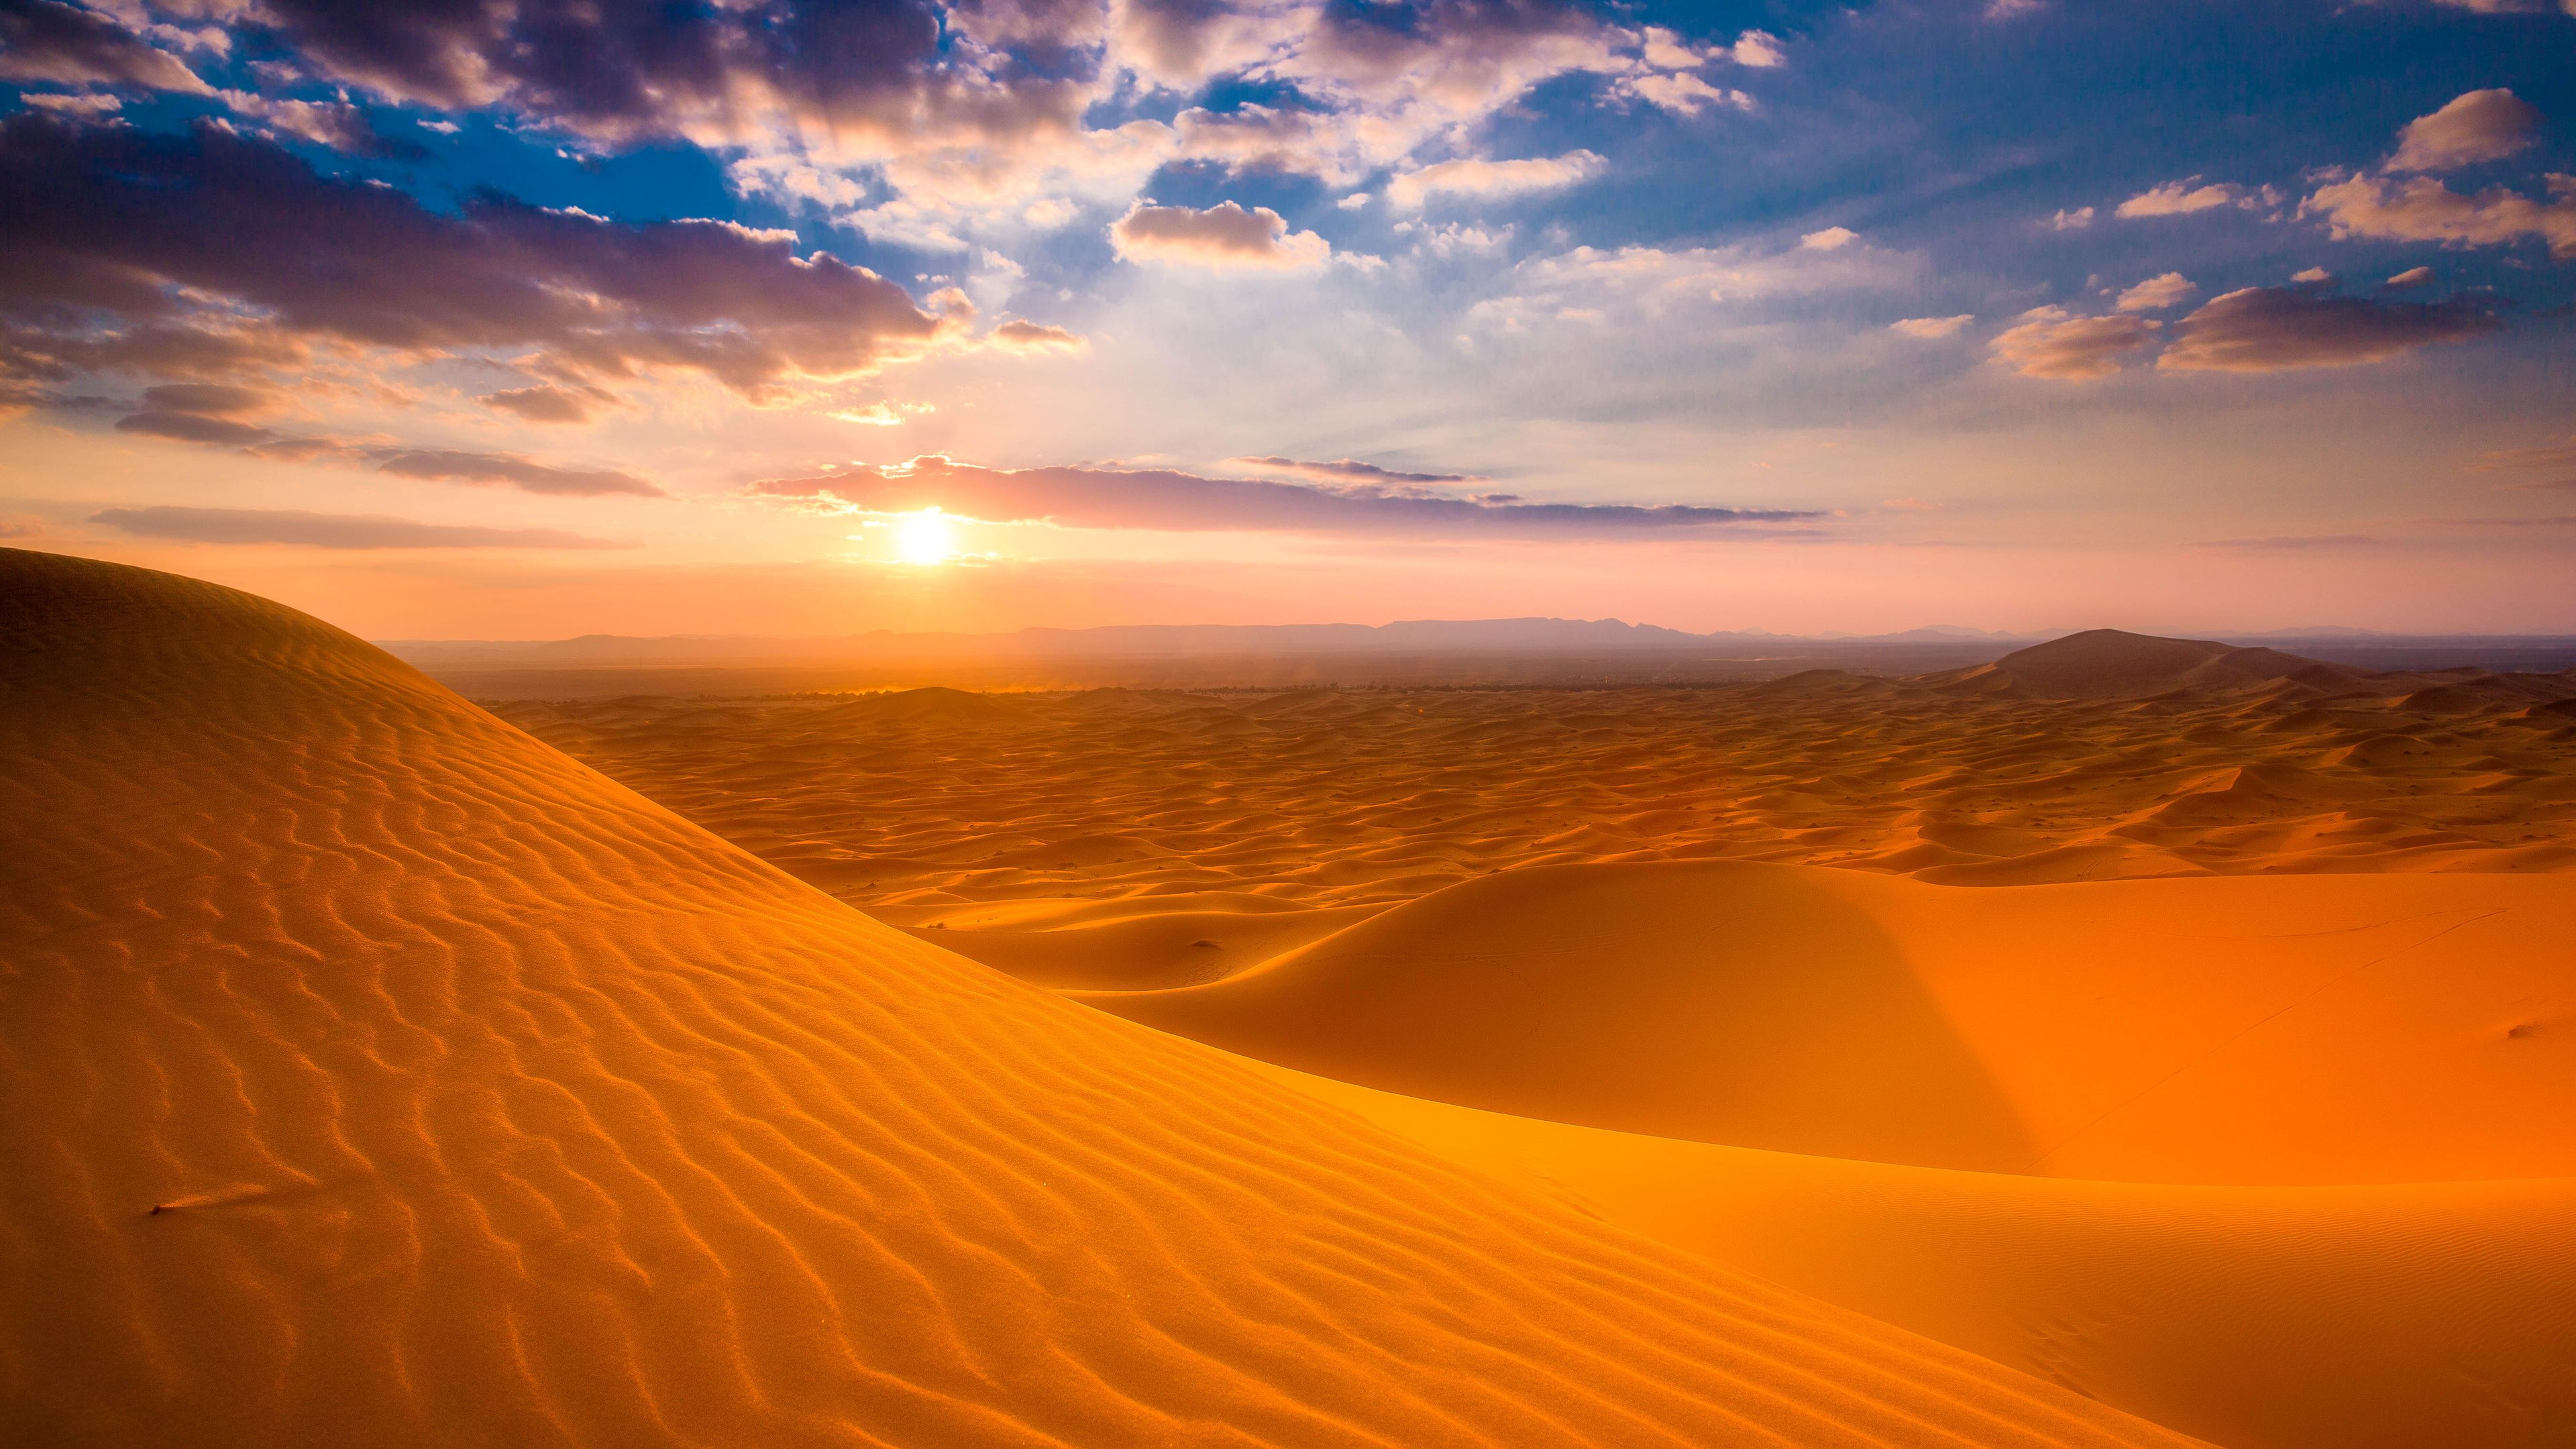 Sahara Desert Sunset Wallpapers Desktop Background High